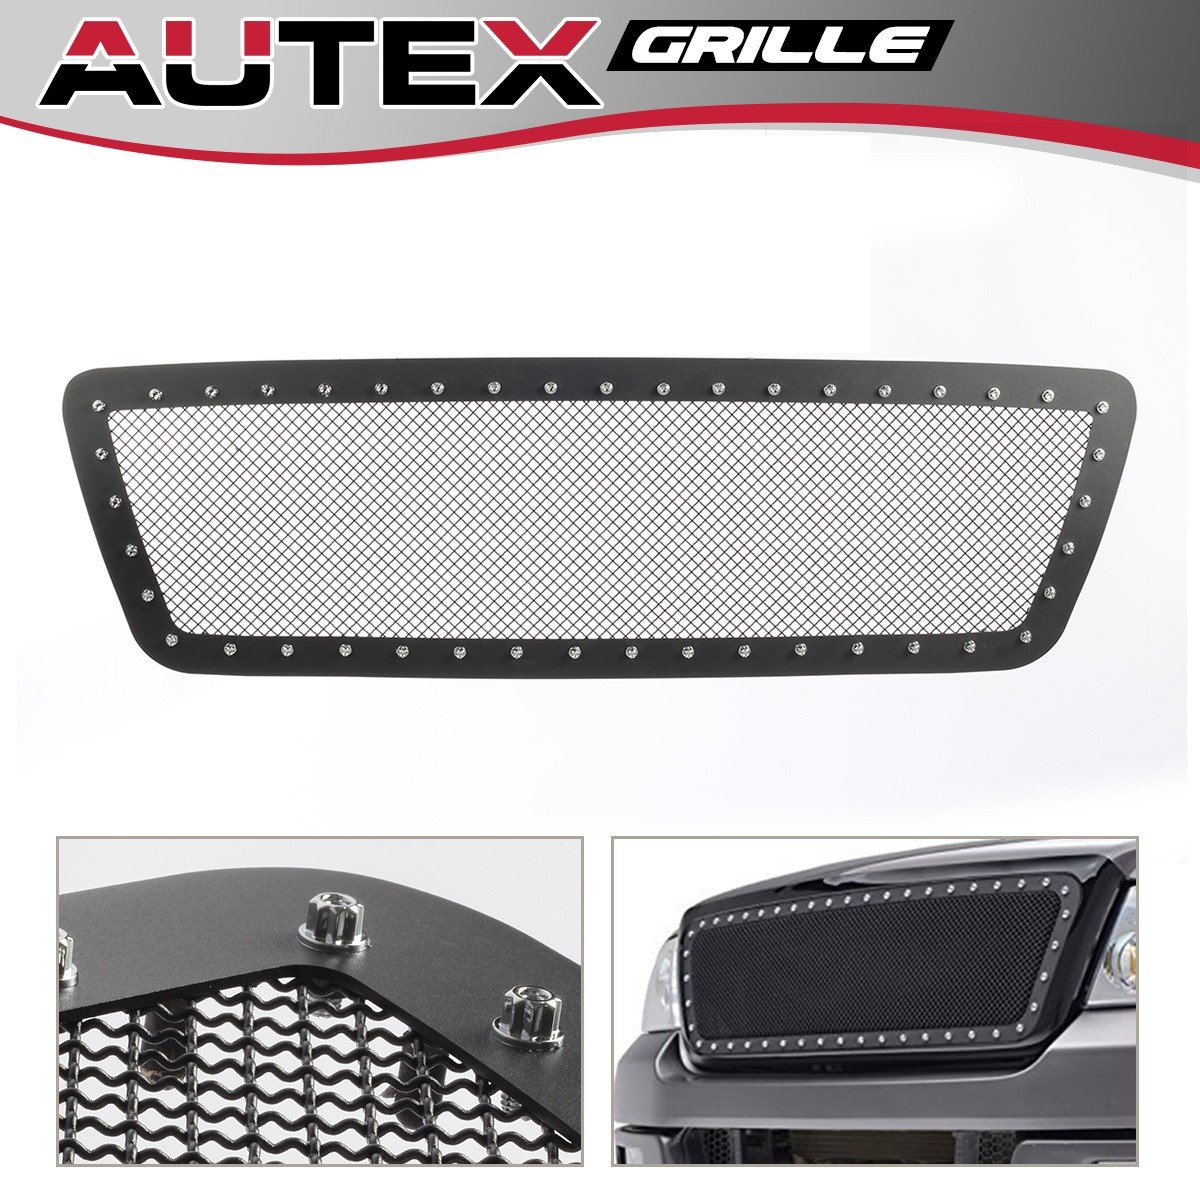 AUTEX Rivet Black Stainless Steel Upper Mesh Grille Insert FL5815H Compatible with 2004 2005 2006 2007 2008 Ford F-150 Grill